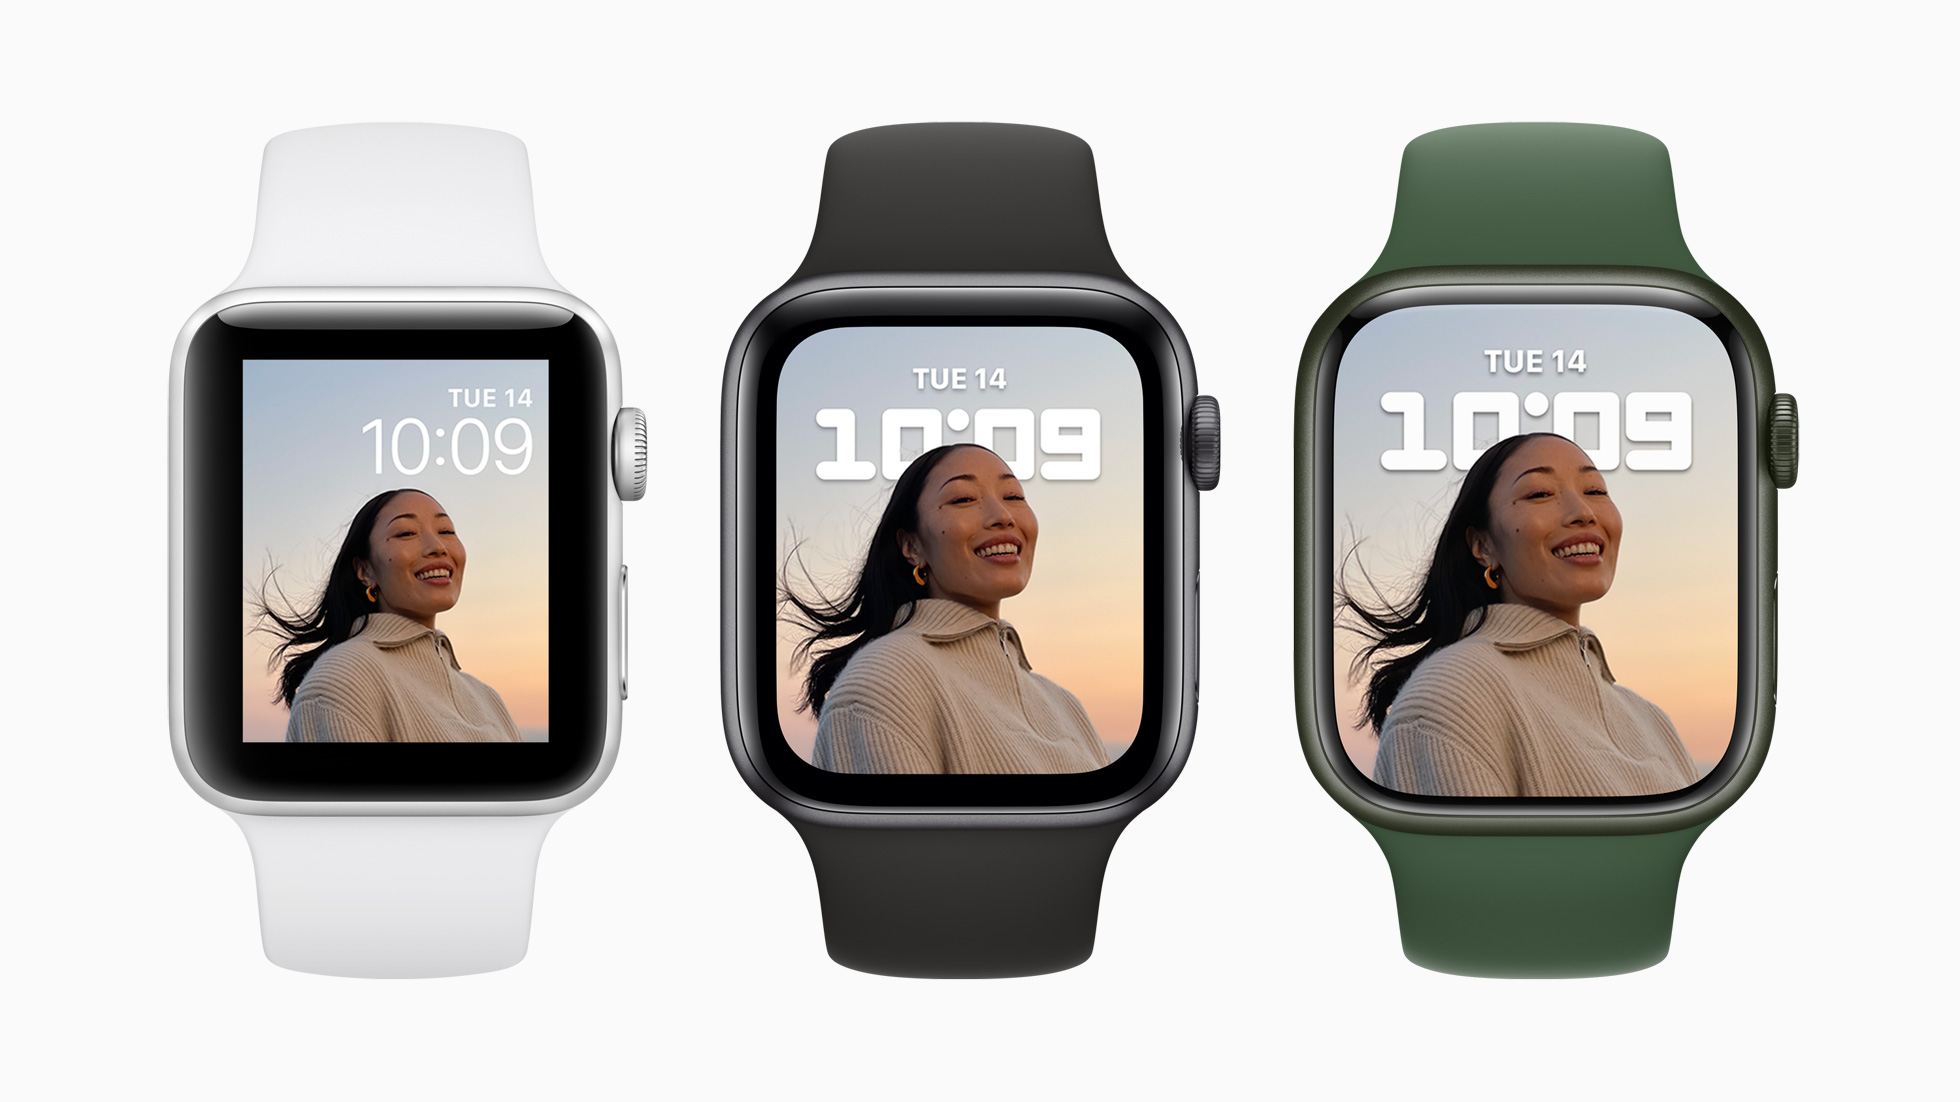 Apple's marketing image showing screen size comparison between Apple Watch Series 7 and older models